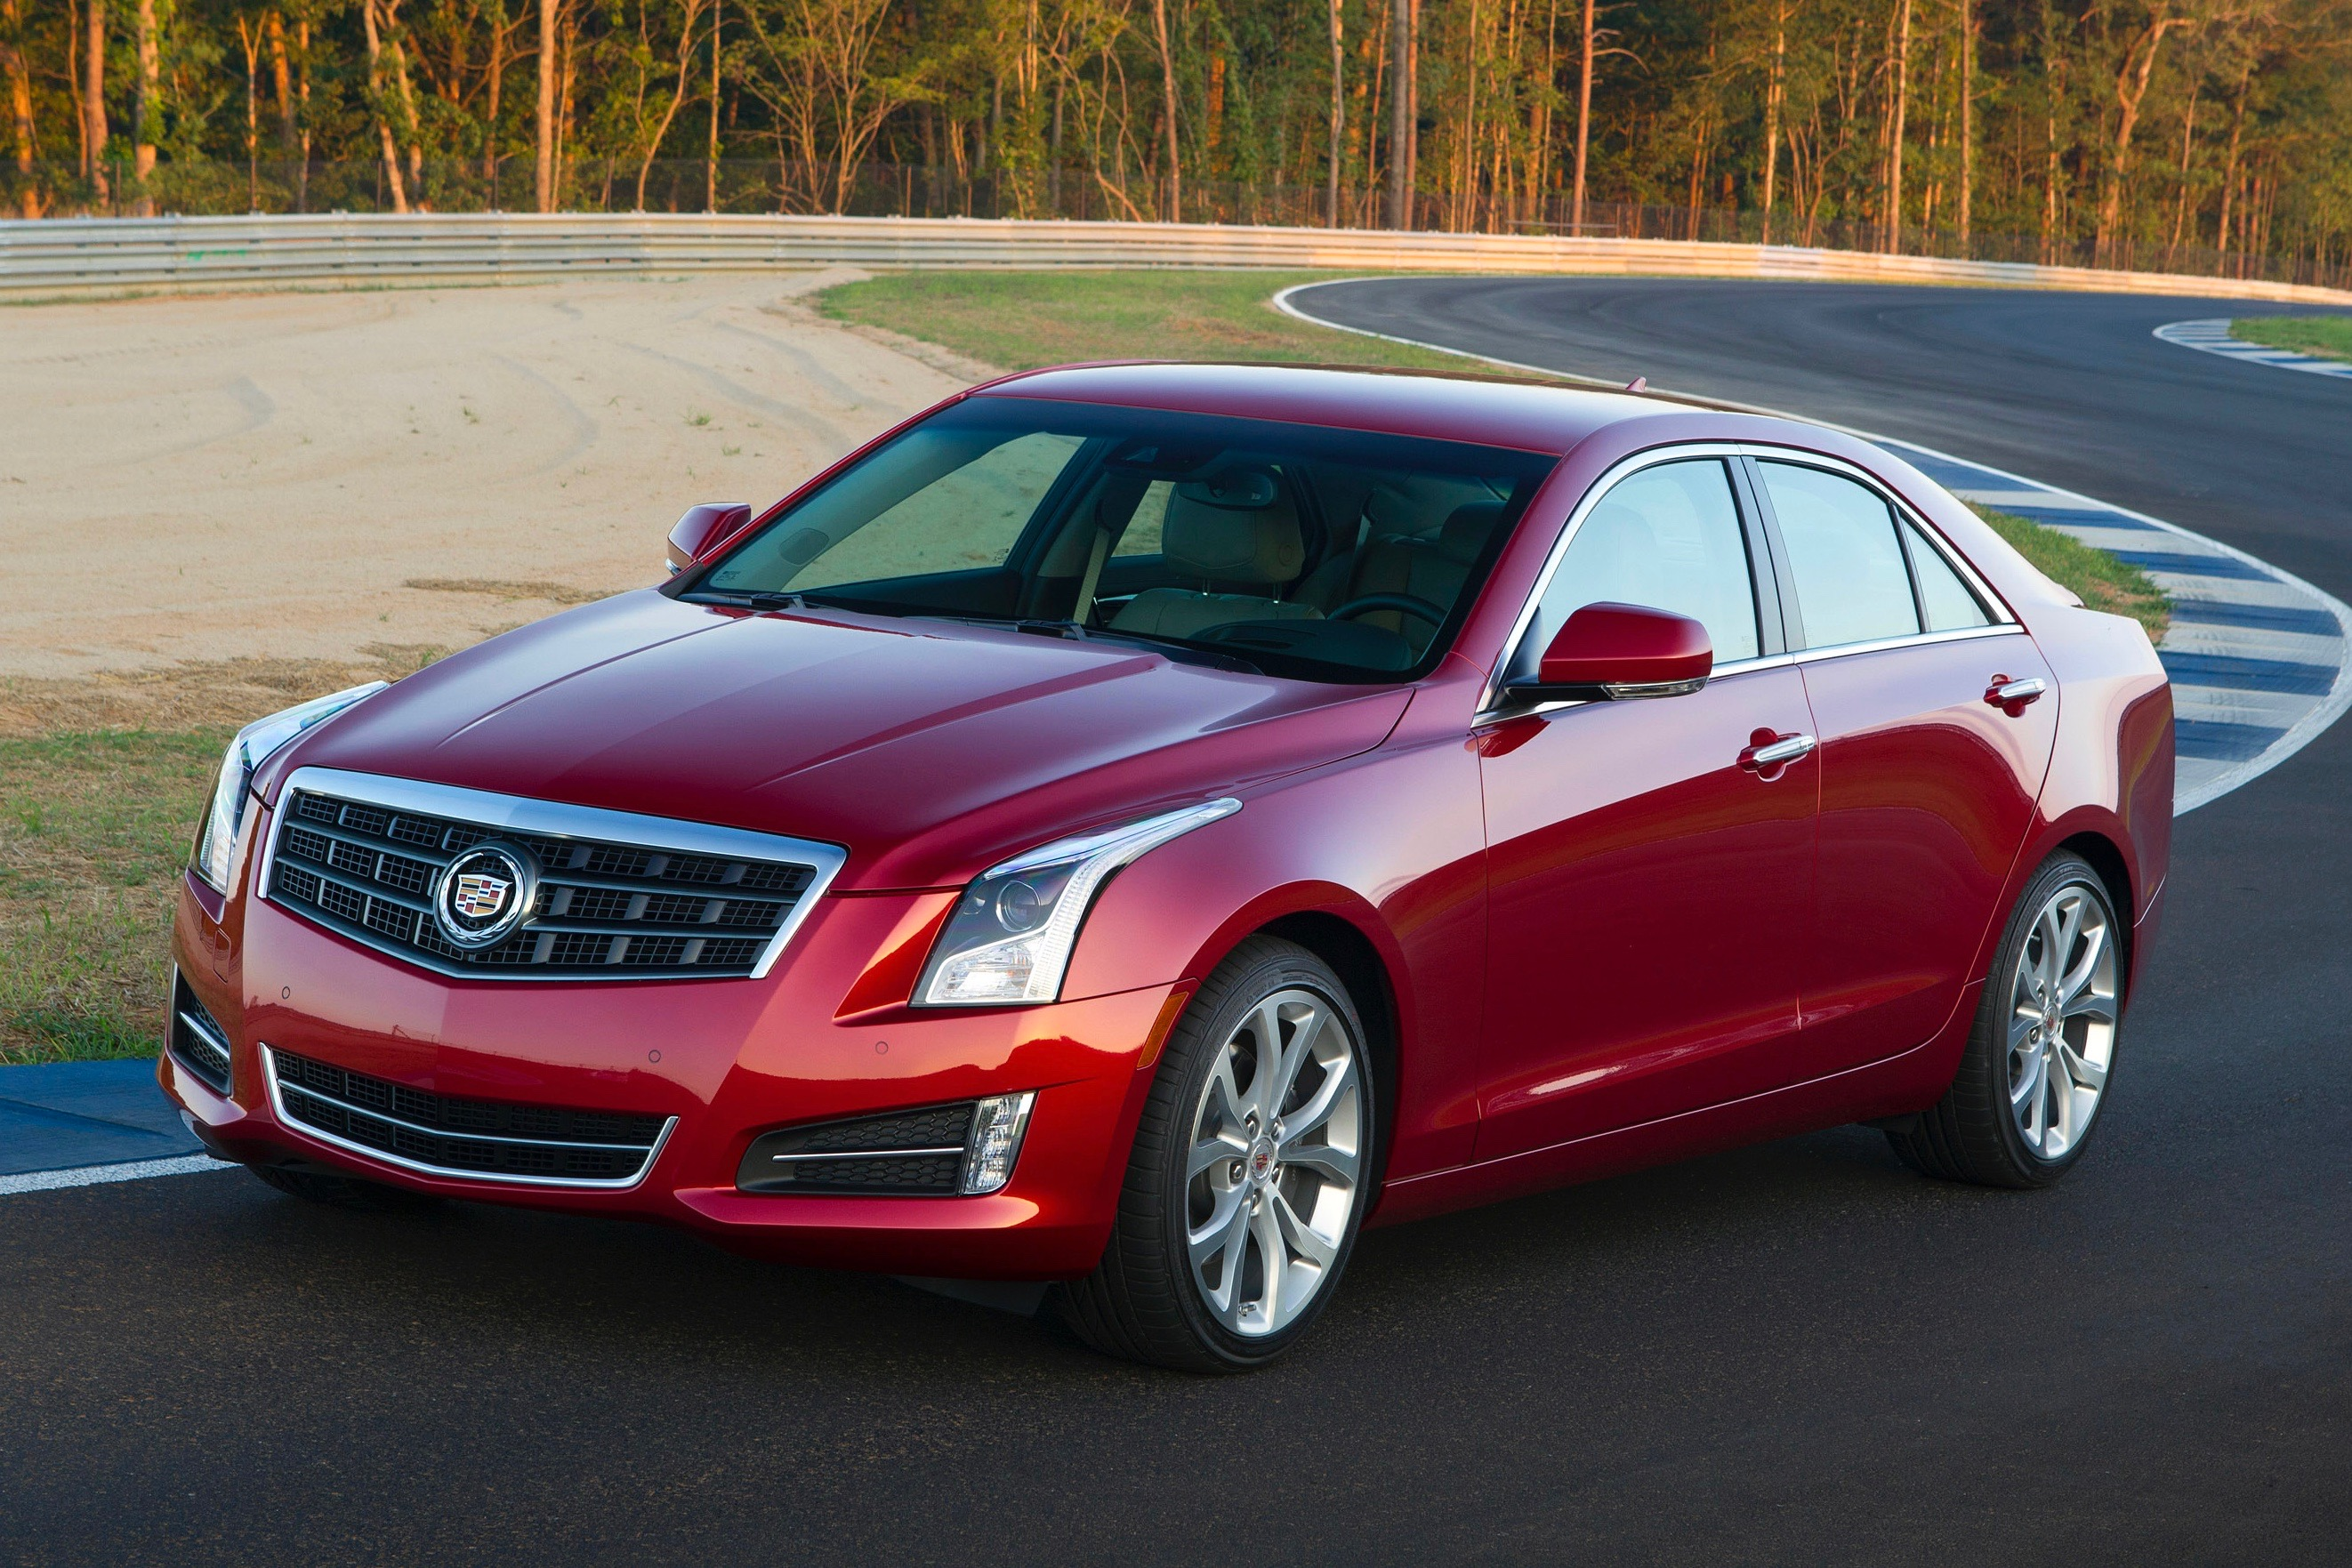 5-year Rewind: The Top 6 Used Cars from 2013